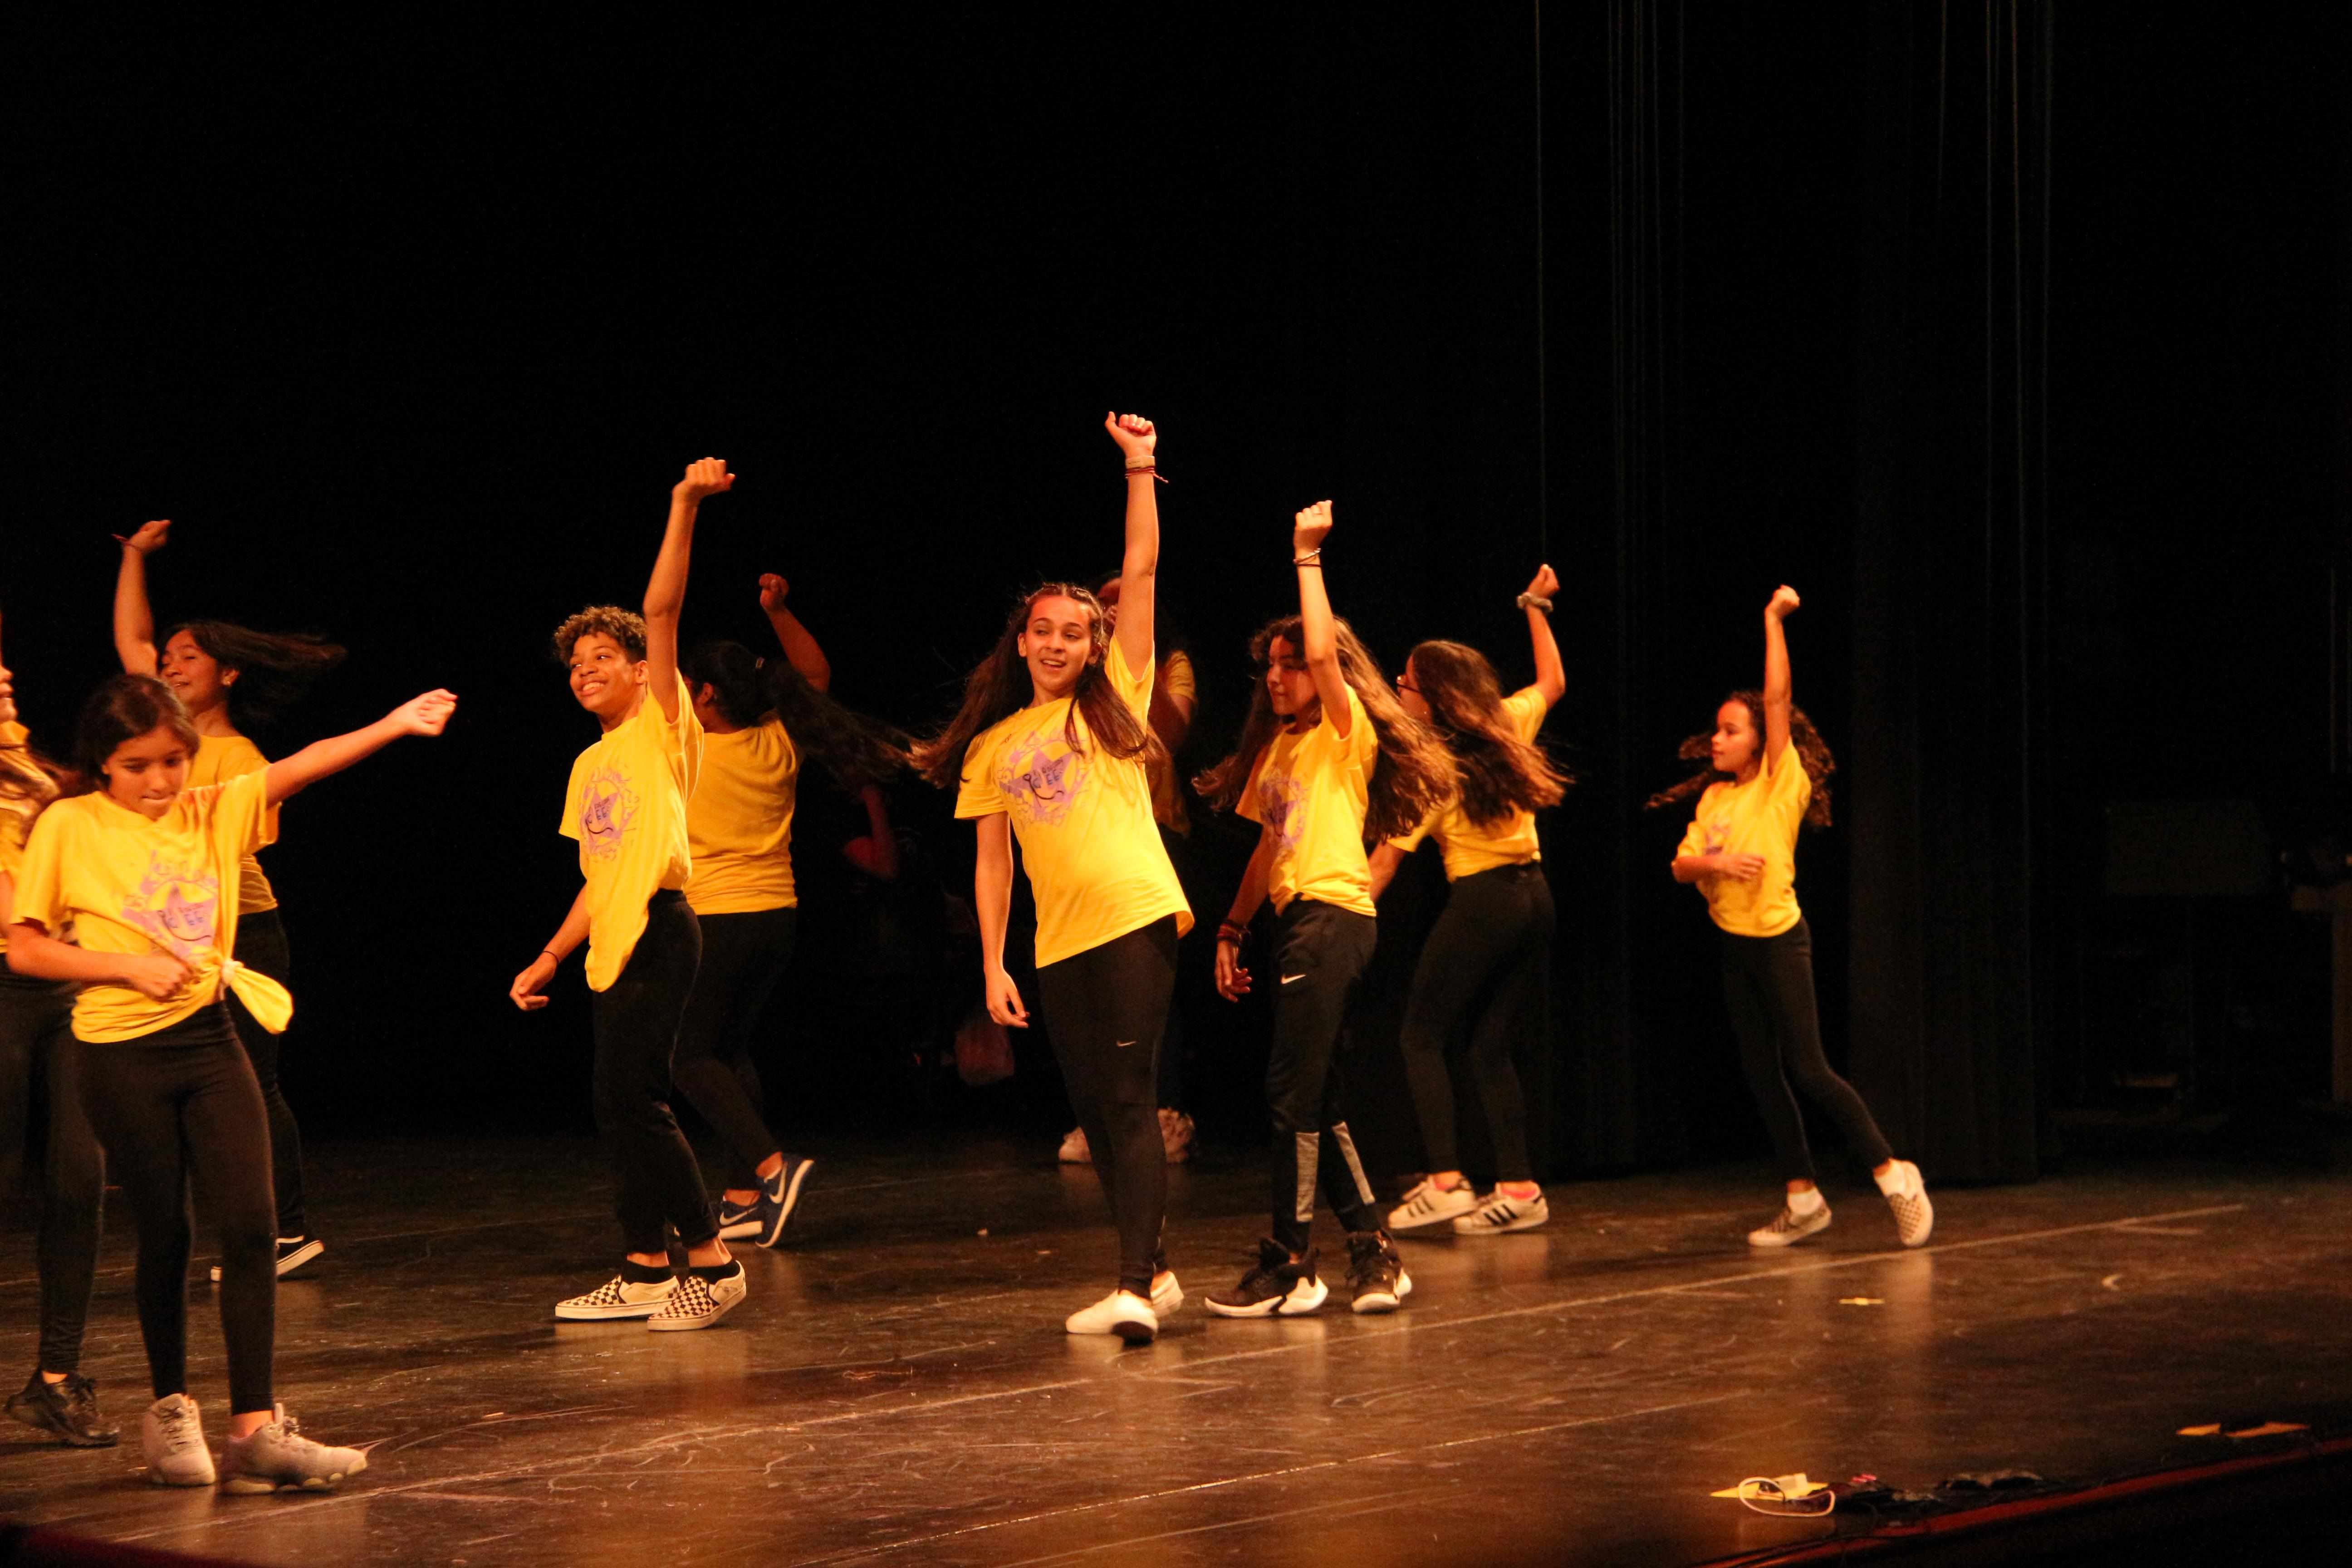 middle school girls wearing yellow t-shirts dancing together